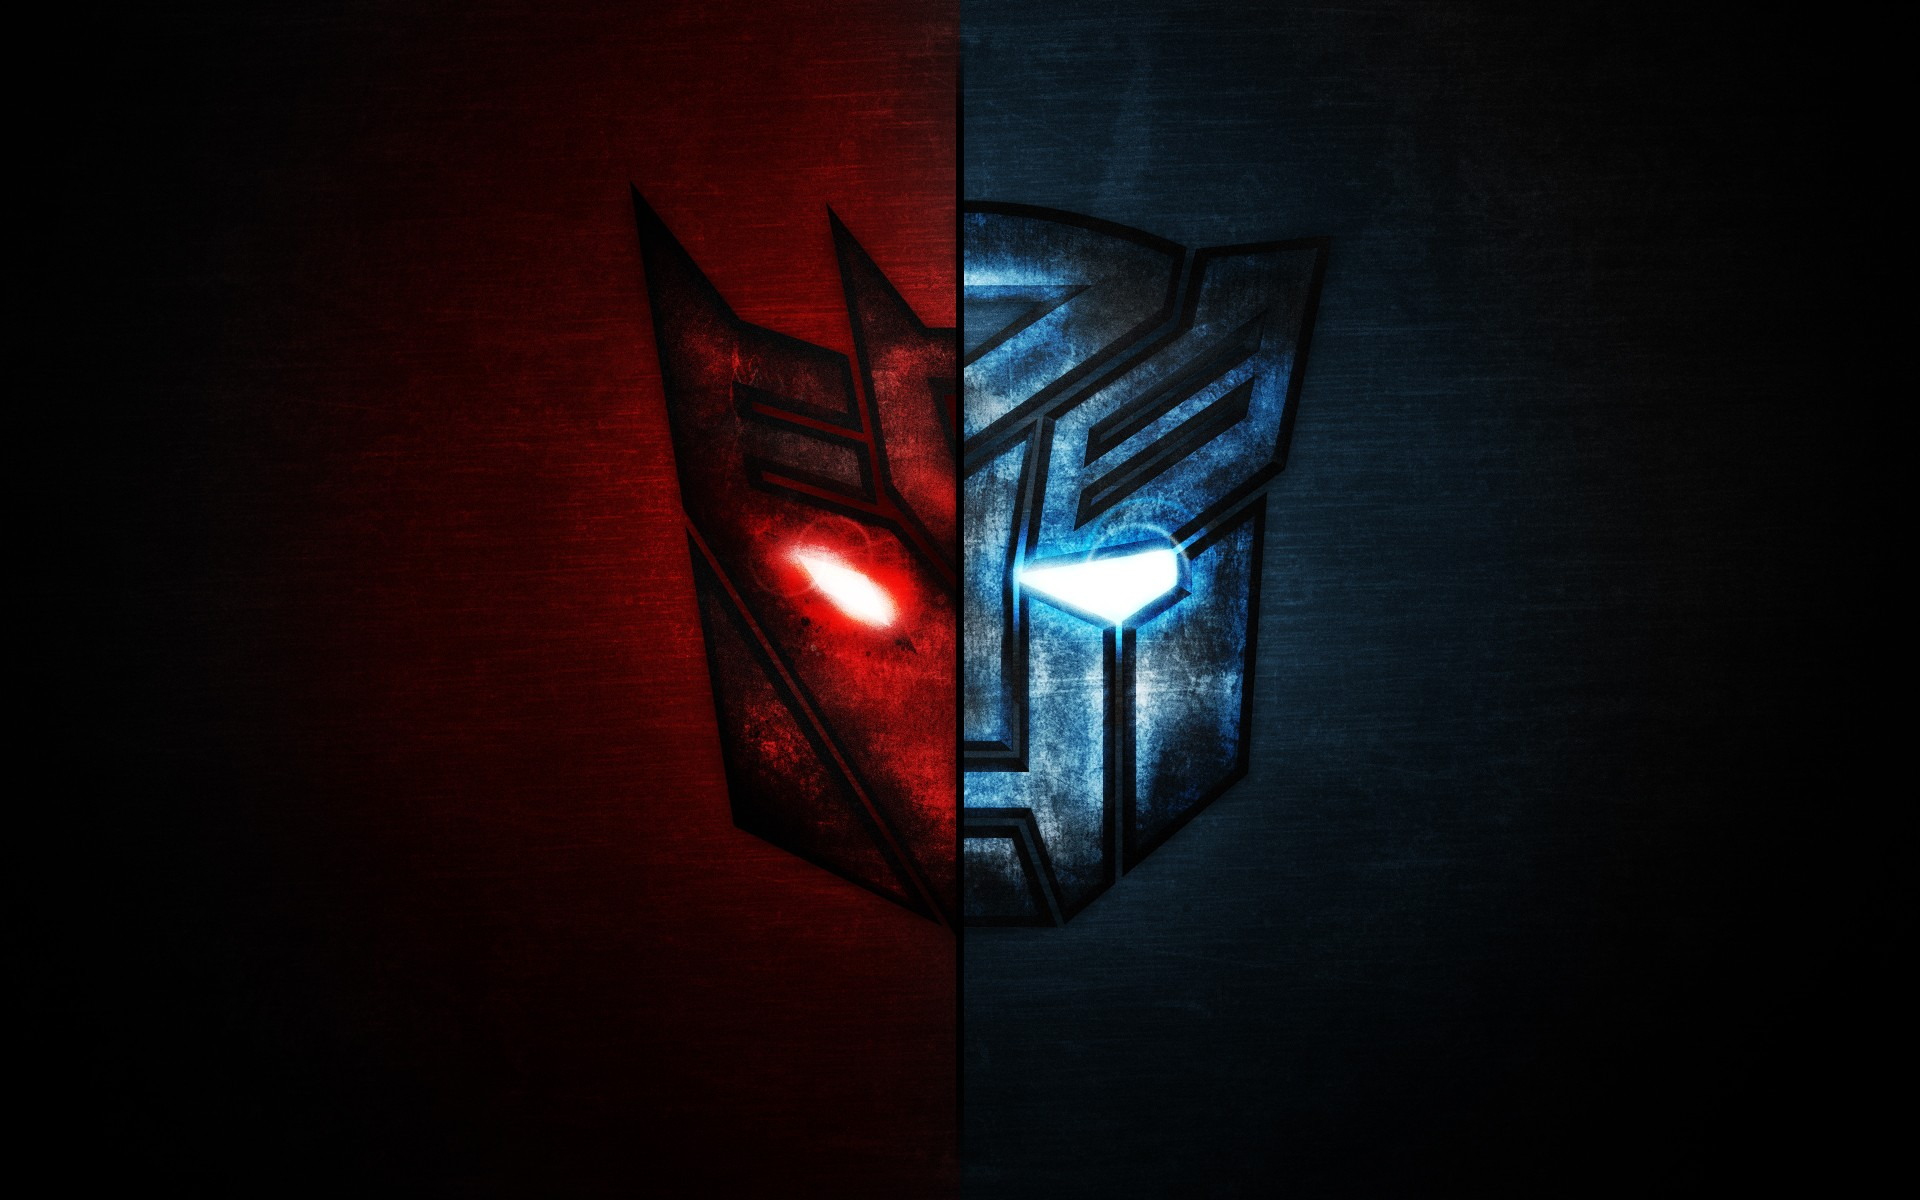 17+ images about we love transformers on Pinterest | Logos, Free